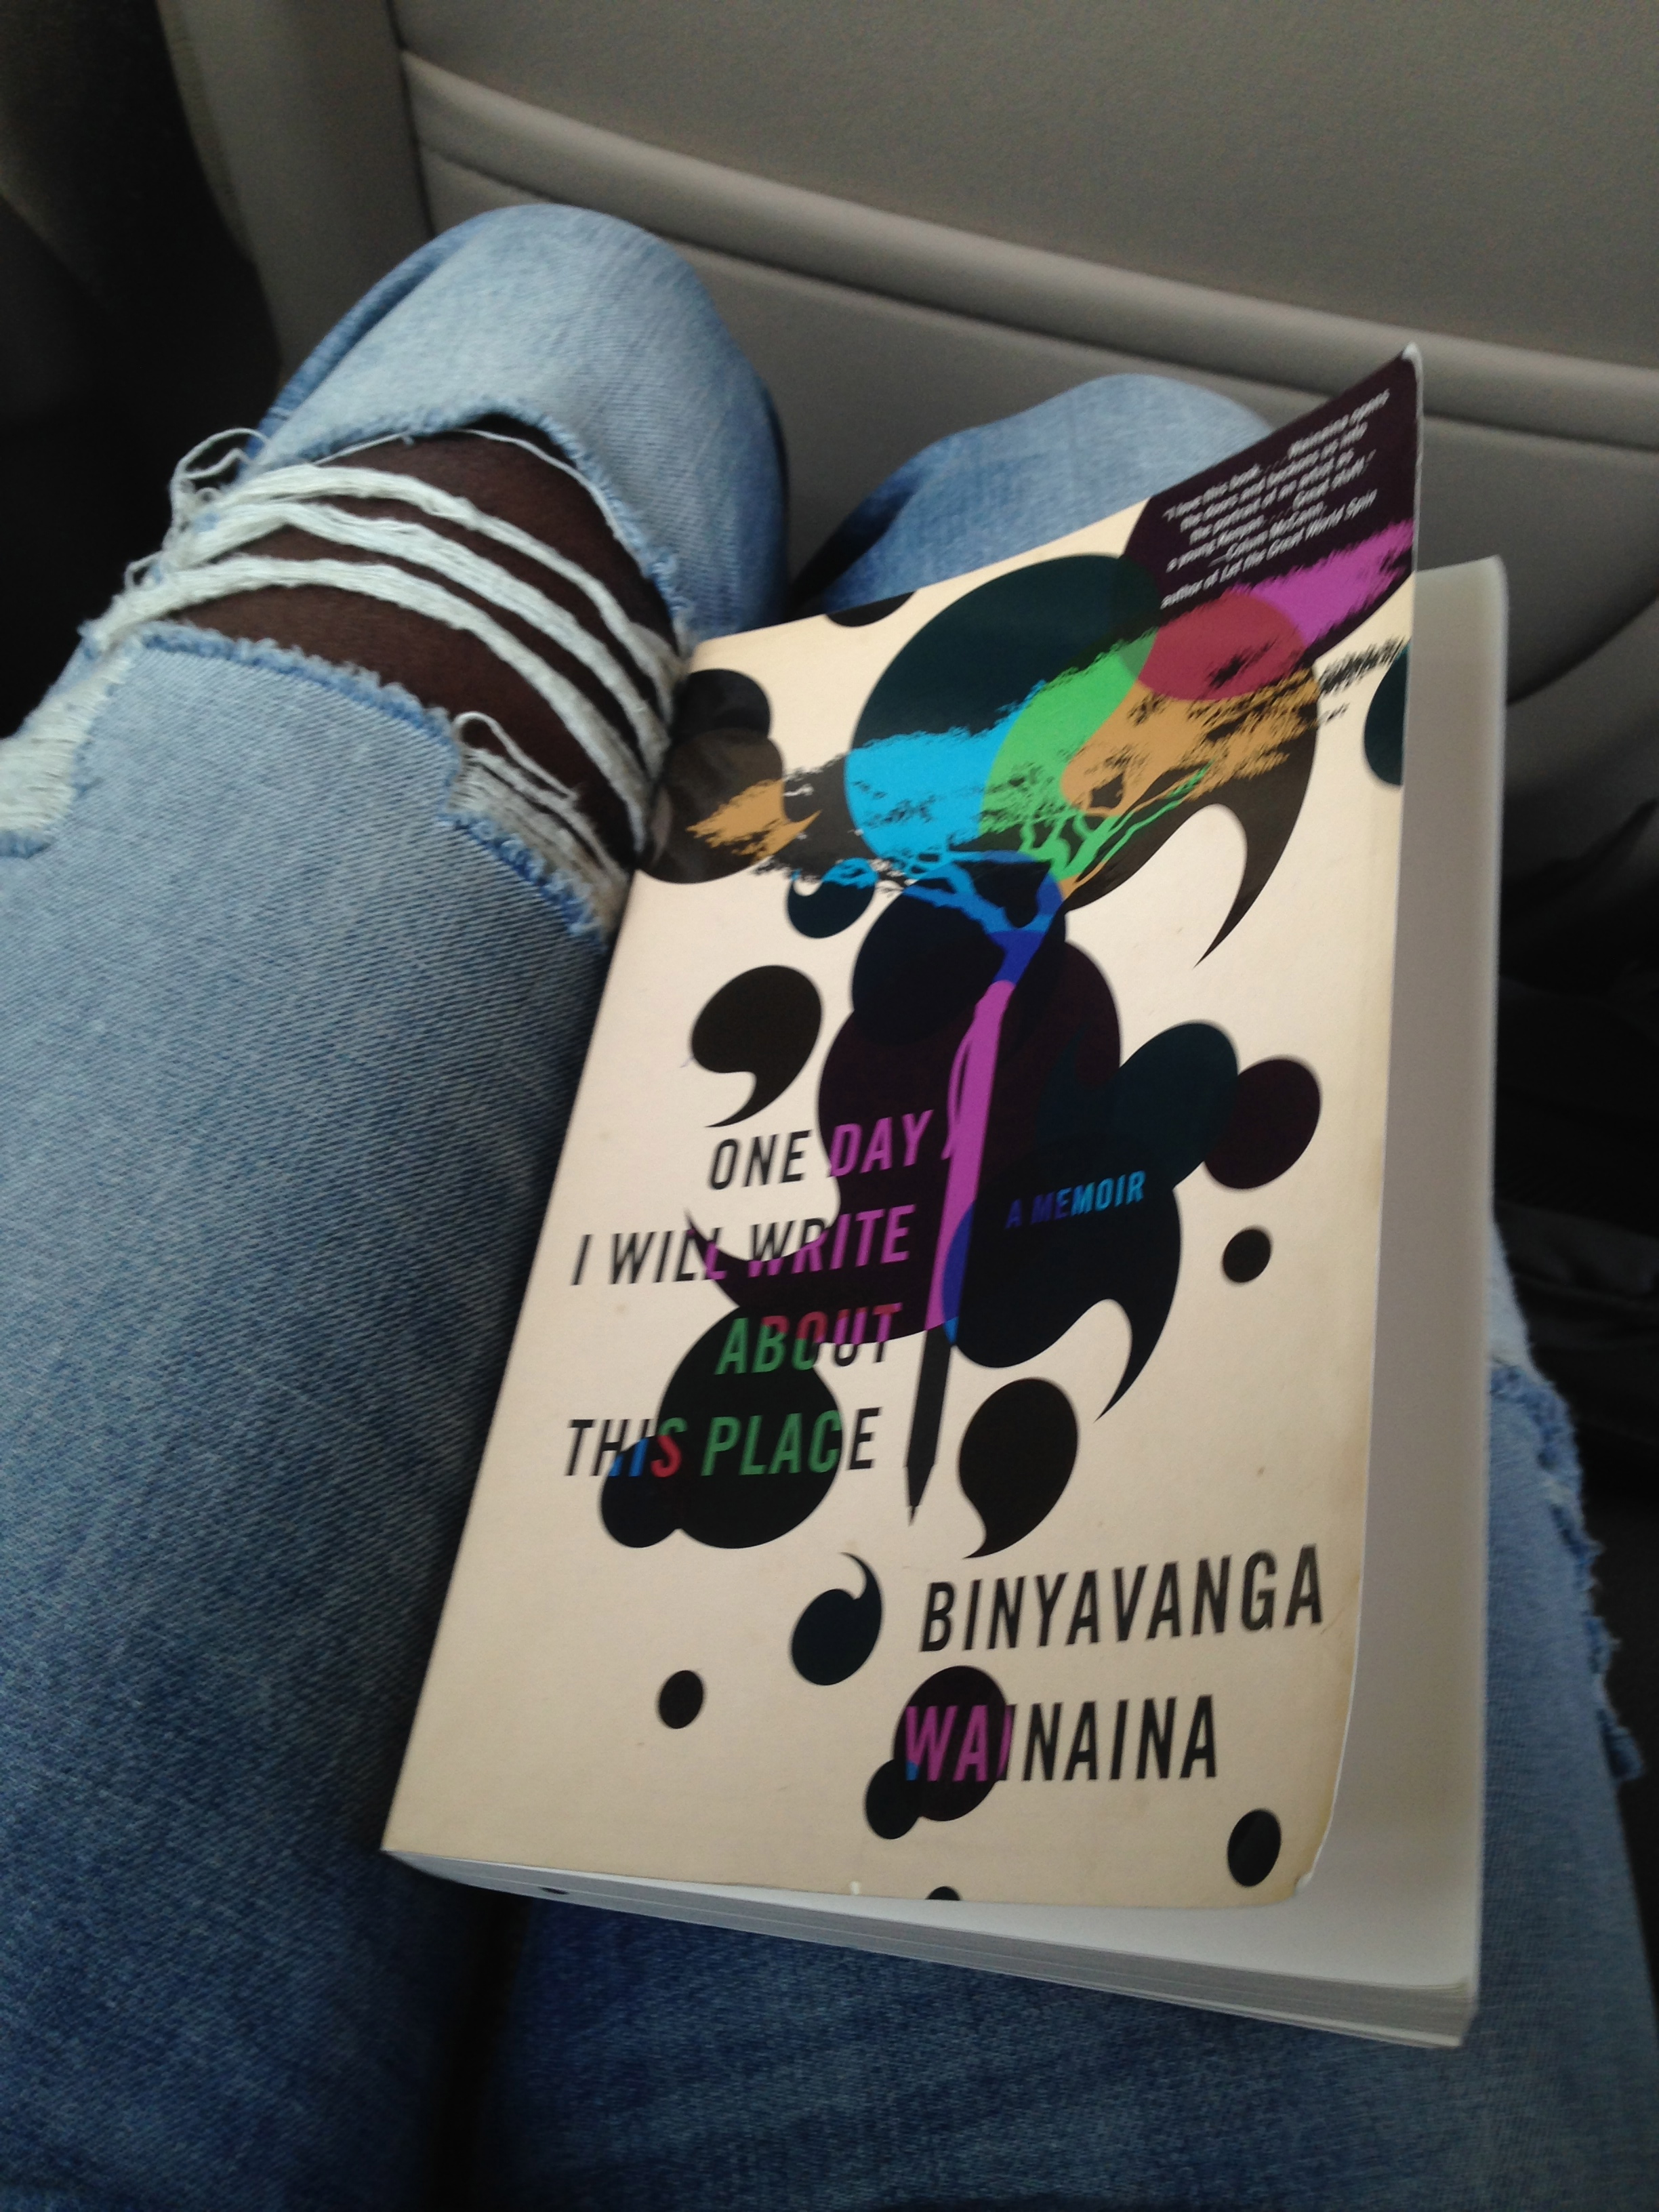 One Day I Will Write About This Place by Binyavanga Wainaina – review